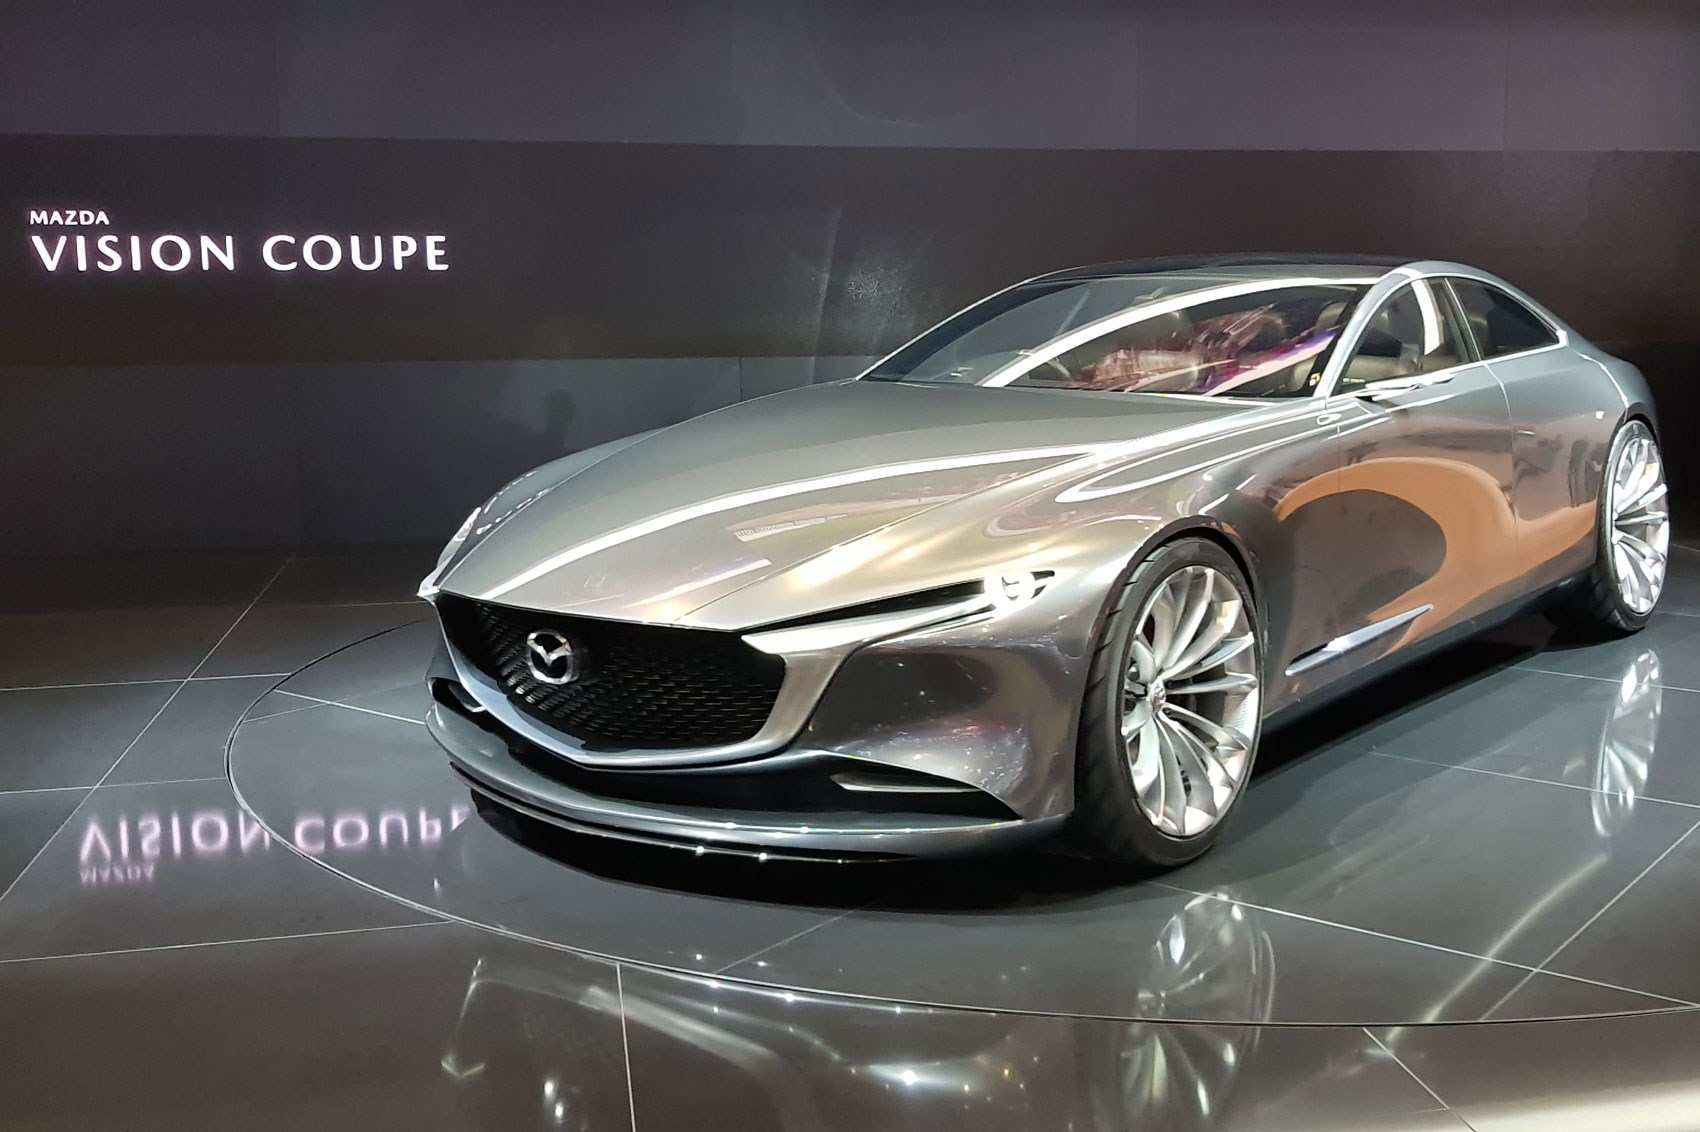 93 All New The 2019 Mazda Vision Coupe Price Concept Spy Shoot for The 2019 Mazda Vision Coupe Price Concept